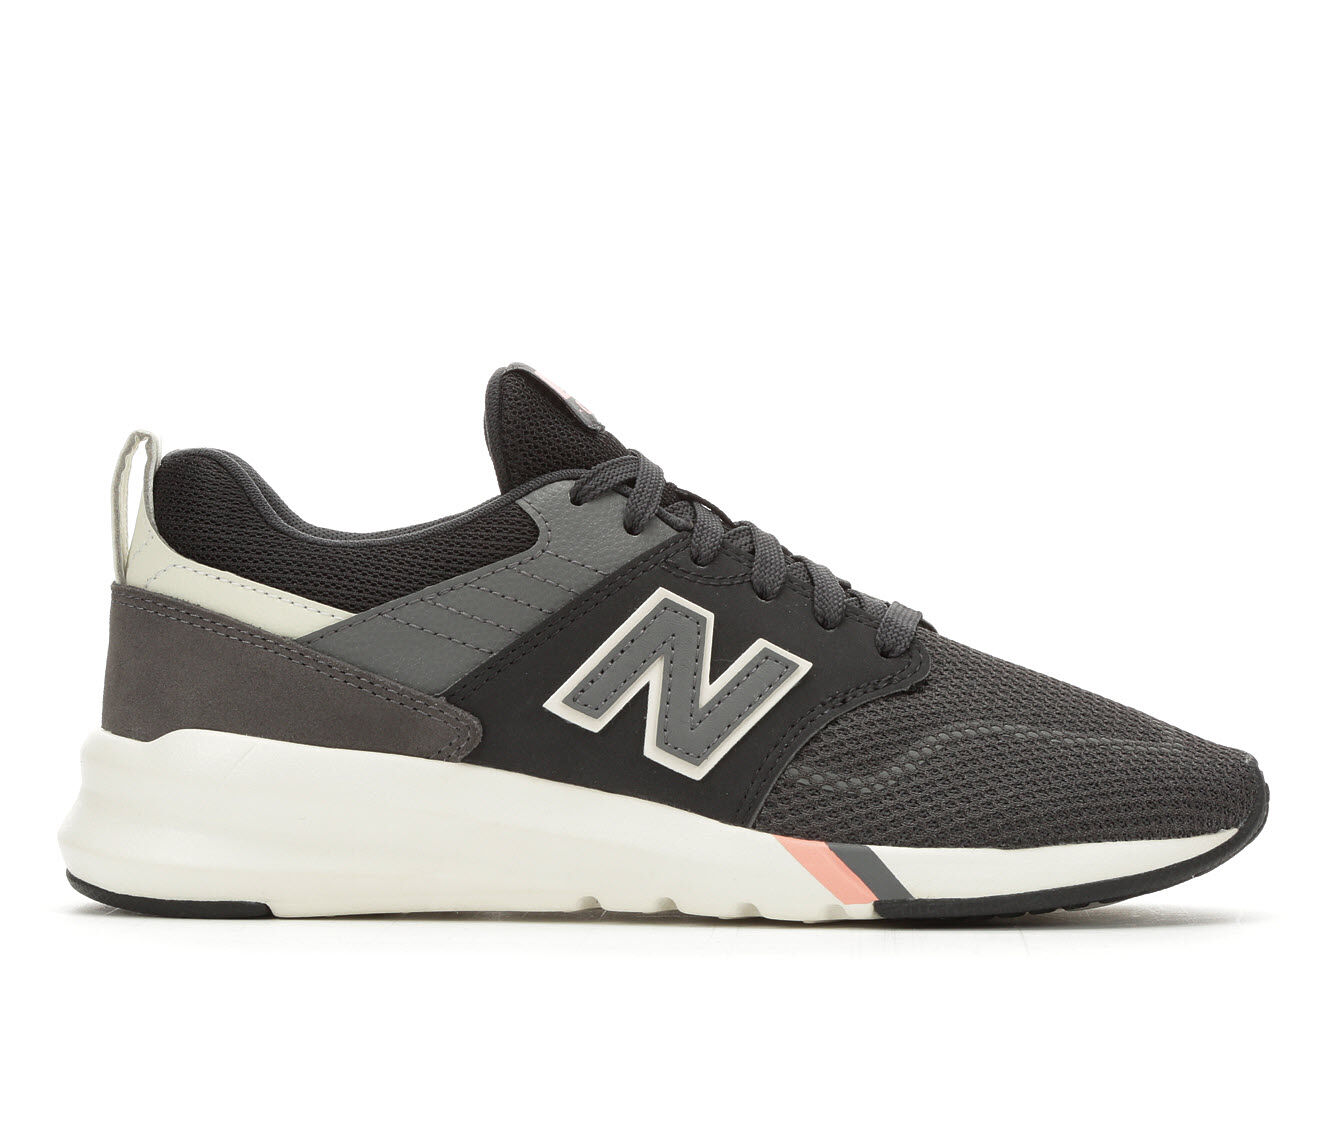 Popularity Best Women's New Balance 009 Retro Sneakers Black/White/Gry